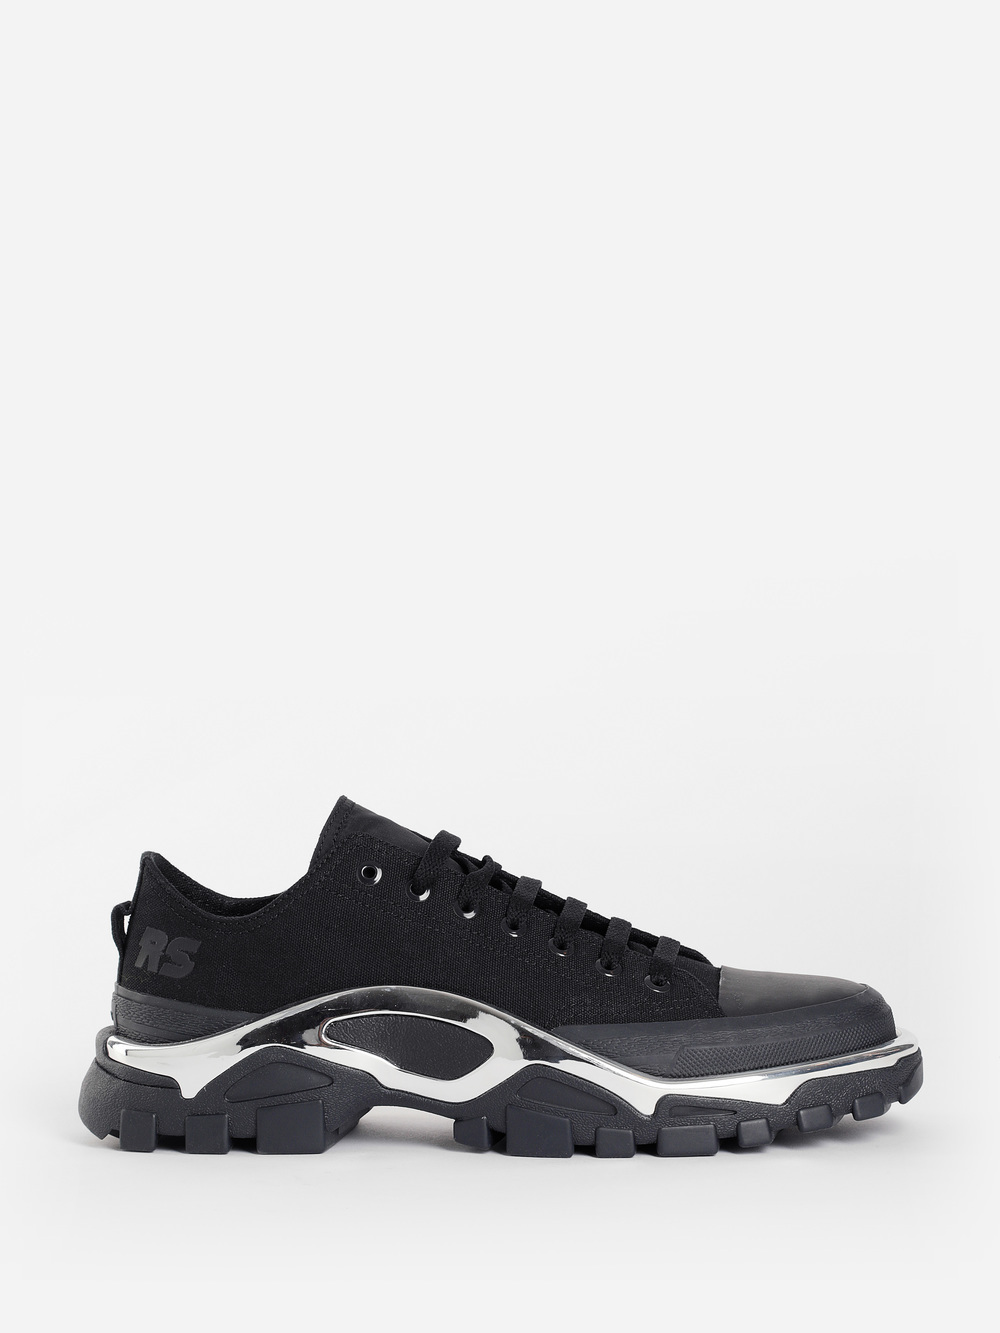 shop raf simons shoes